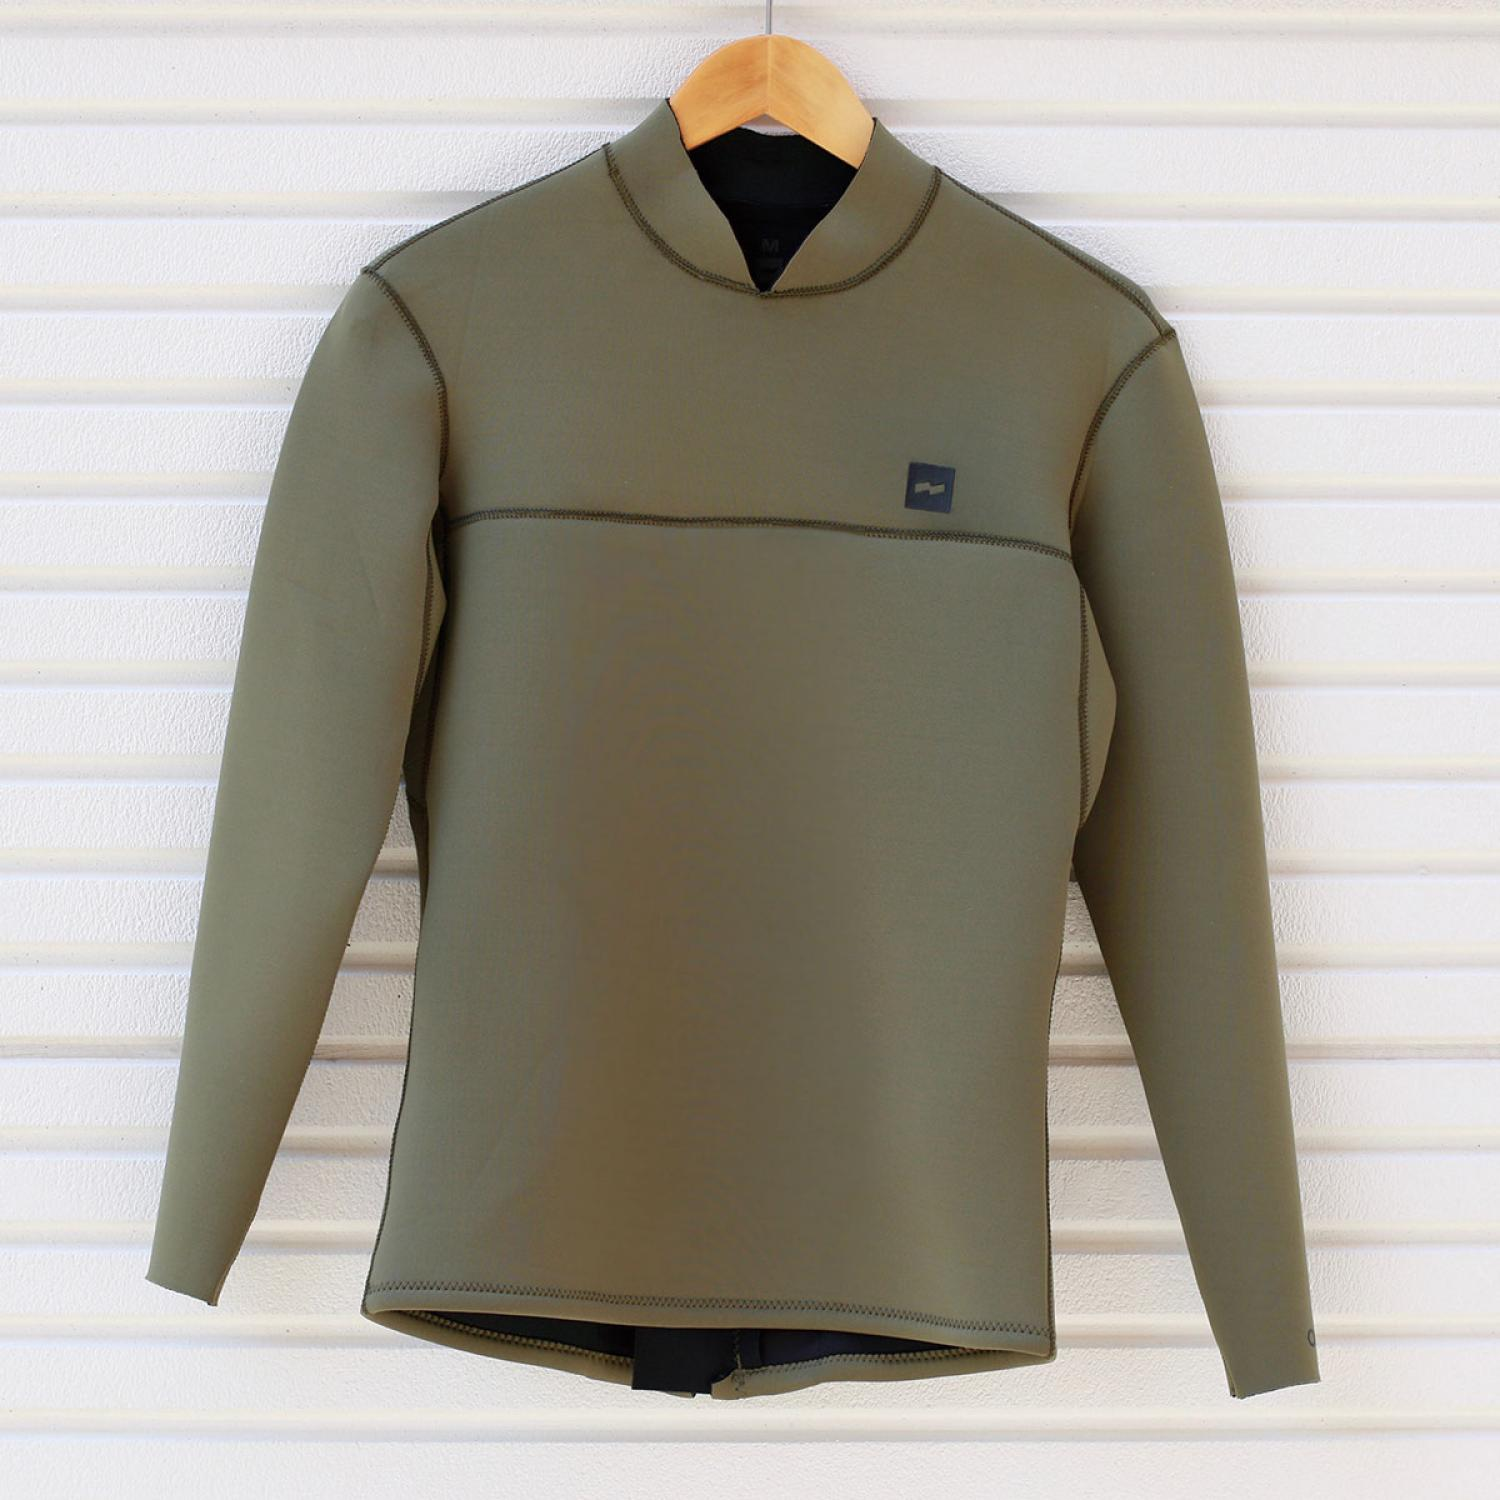 BANKS ONE BACK ZIP JACKET WETSUIT UTILITY GREEN